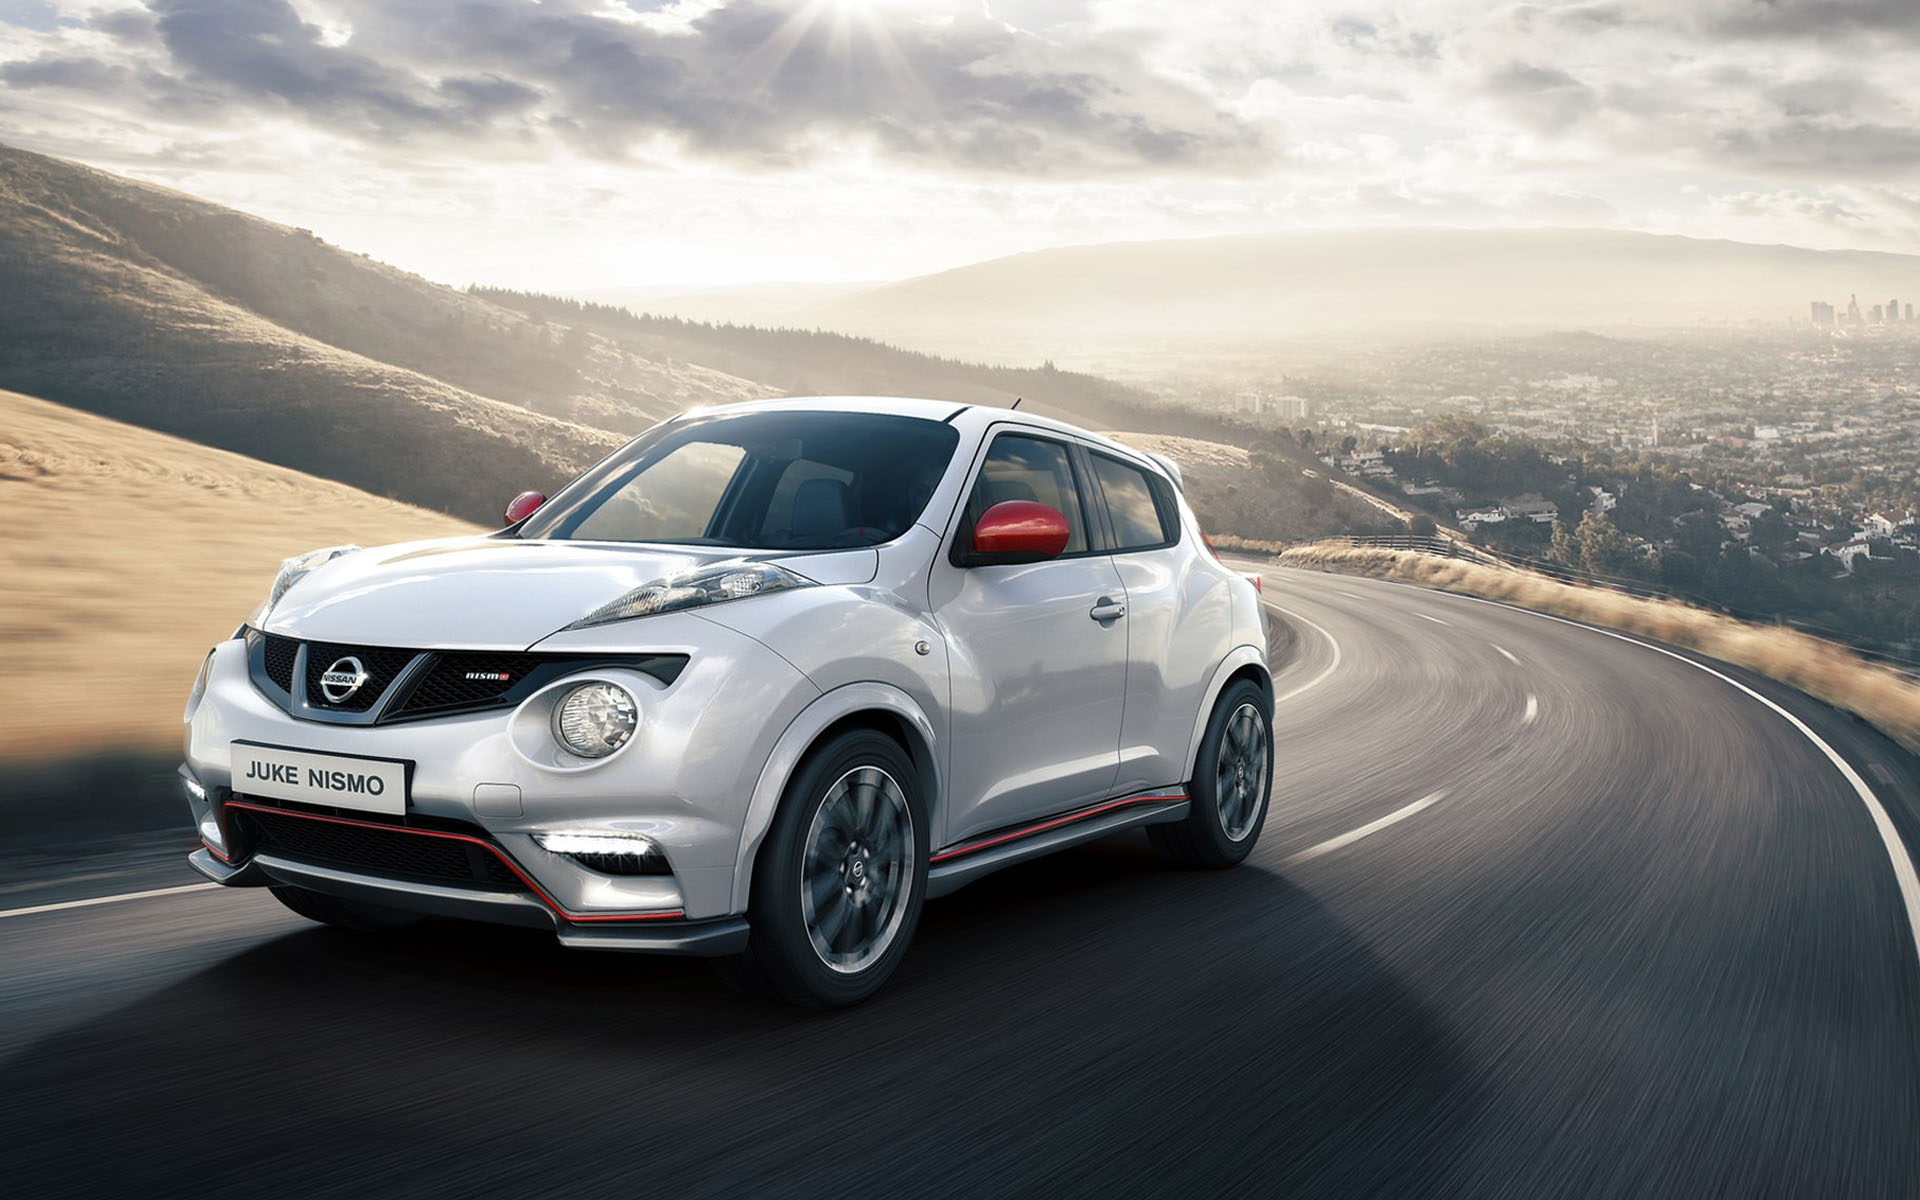 Nissan Juke New Wallpaper Photos 1125 Wallpaper WallDiskPaper